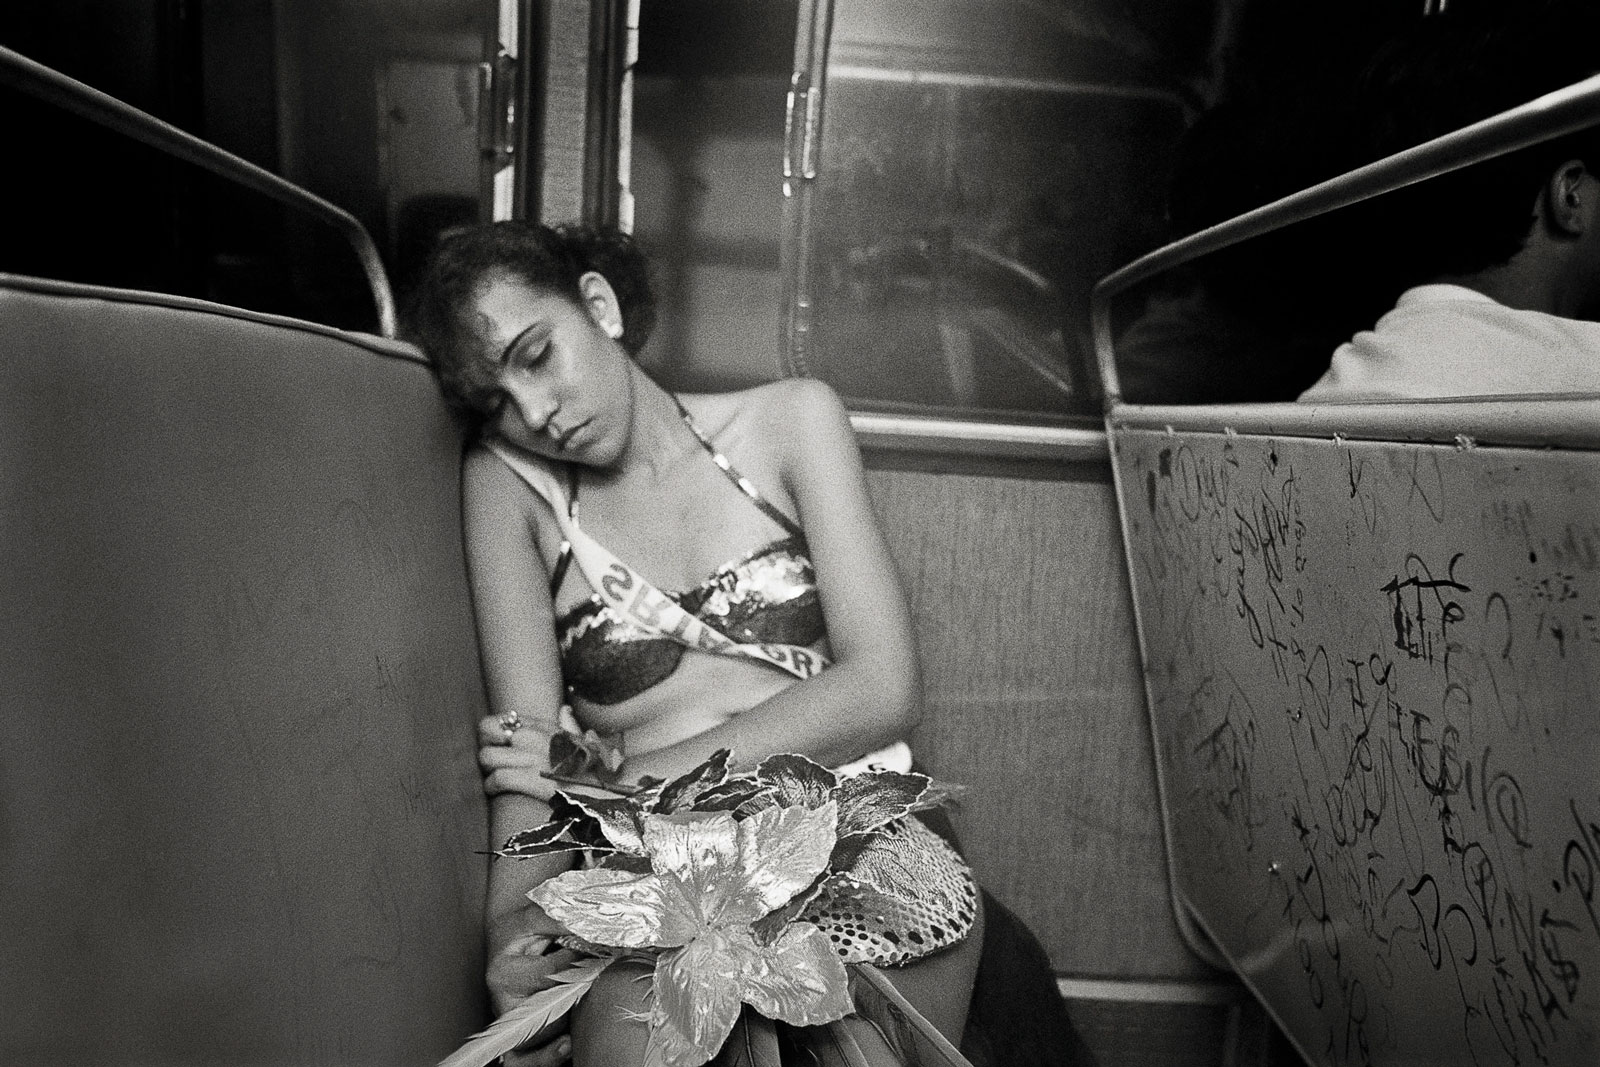 <i>Going Home</i> (1997) In Sincelejo, after the People's Pageant, a candidate rides the bus back to her neighborhood at 3 am.